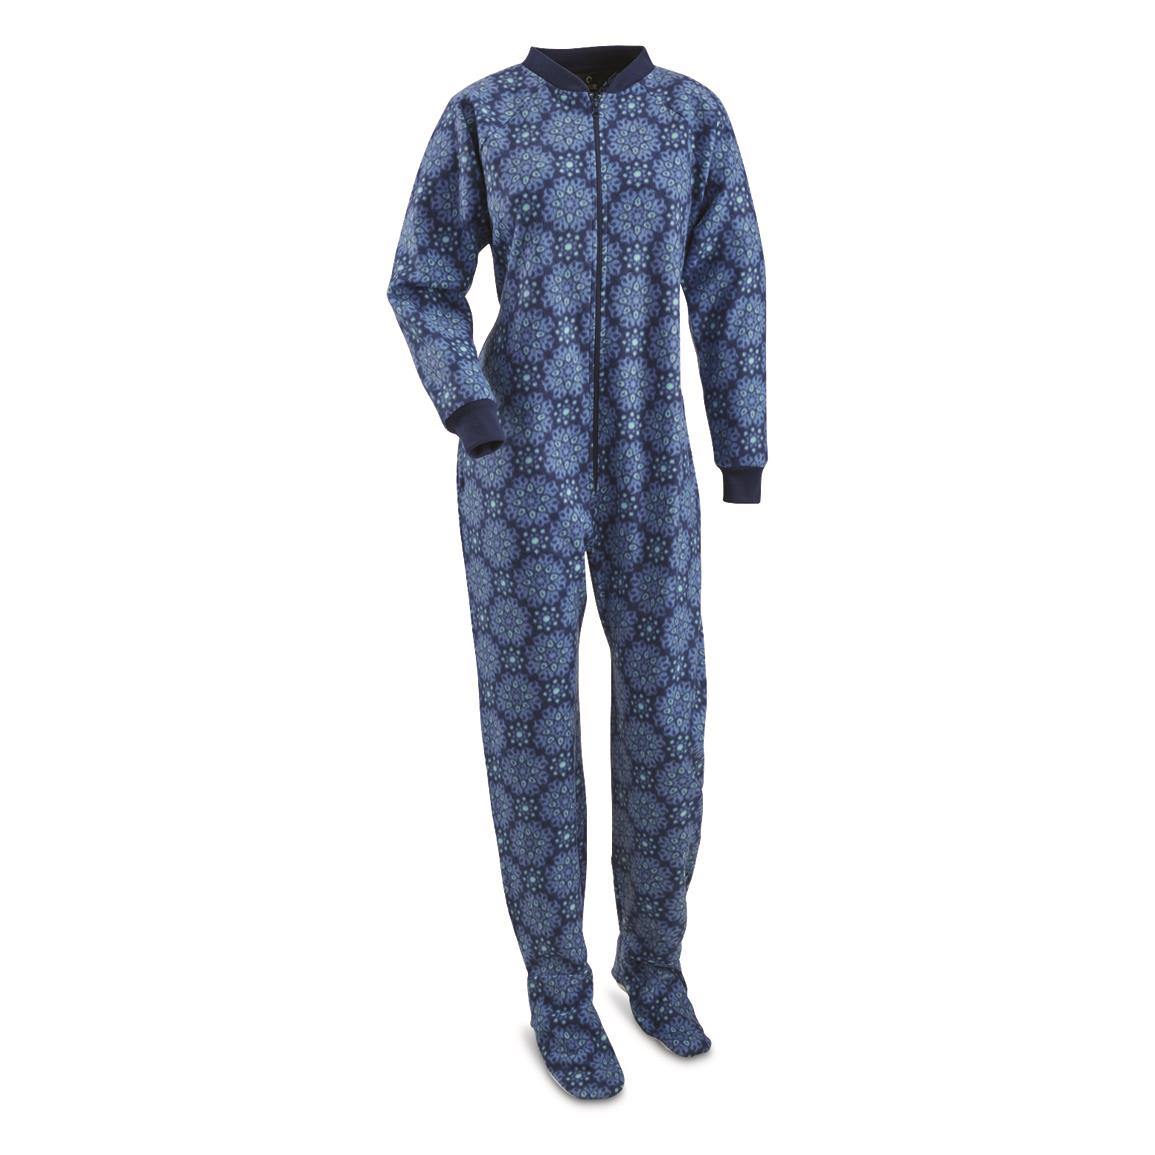 Guide Gear Women's Footed Onesie Pajamas, Blue Medallion